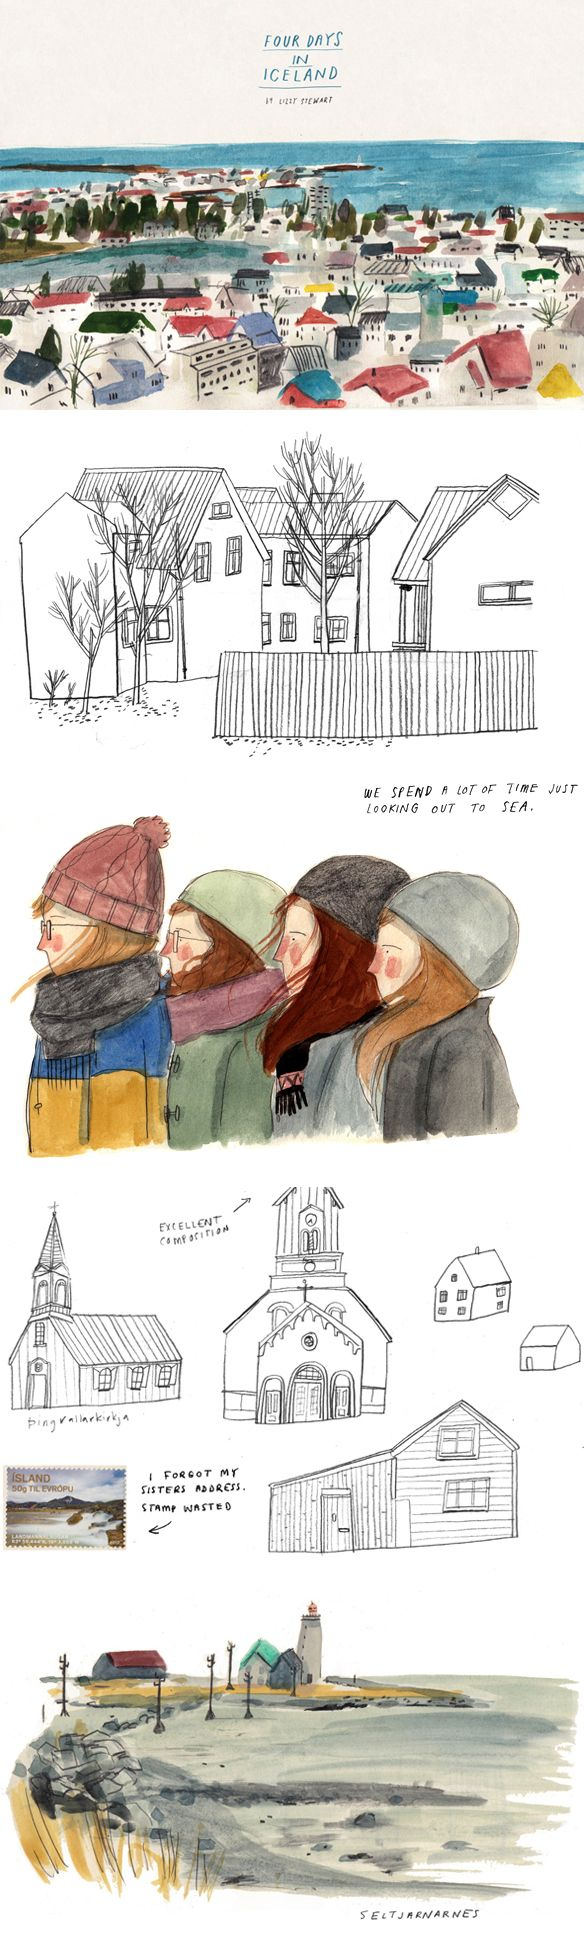 Lizzy Stewart's travel sketchbooks via The Jealous Curator